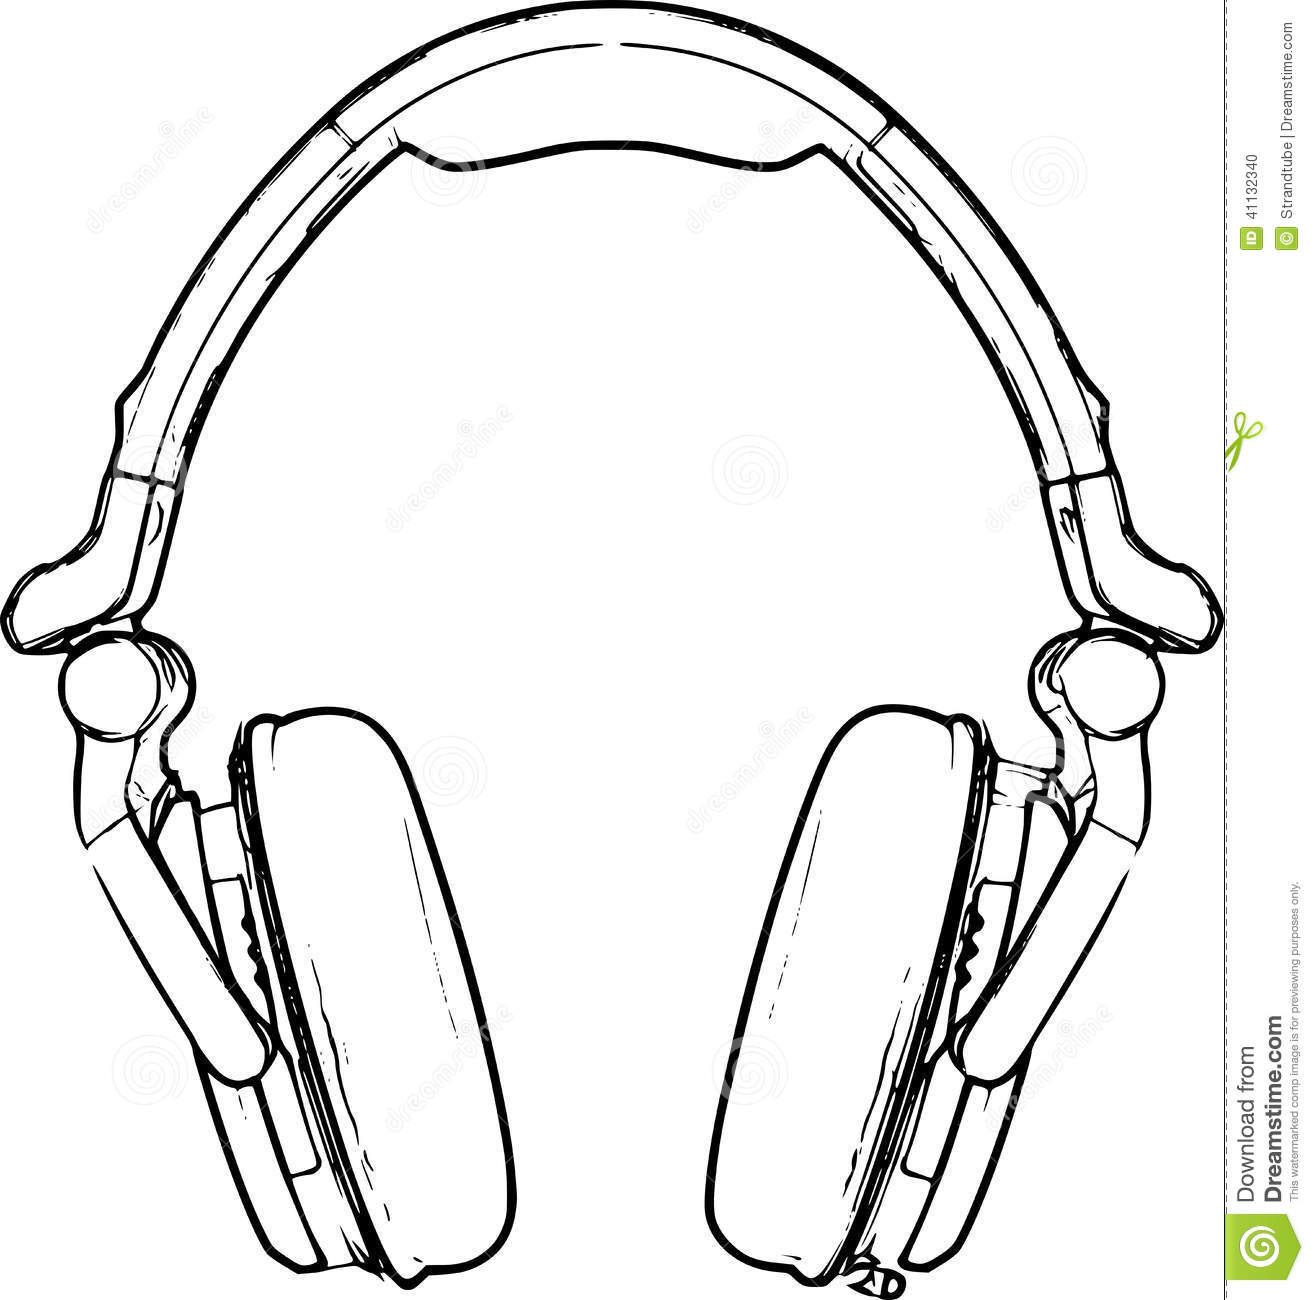 Line Art Headphones : Headphone sketch stock illustration image of isolated